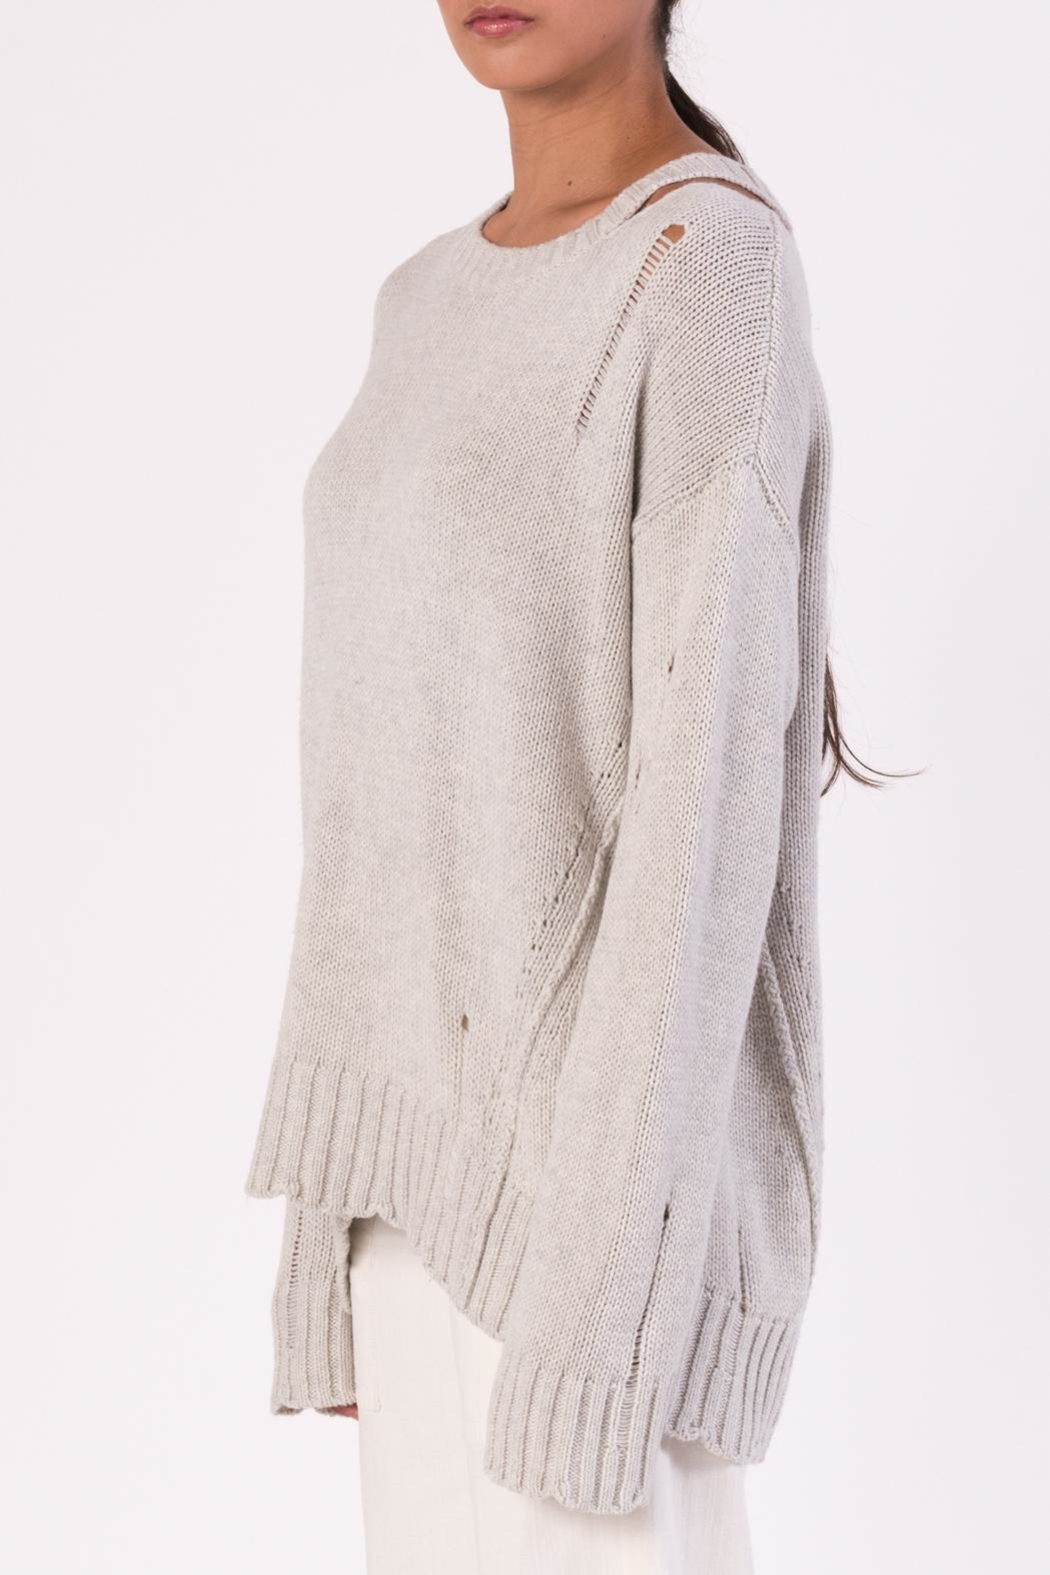 Margaret O'Leary Cotton Grunge Sweater - Front Full Image